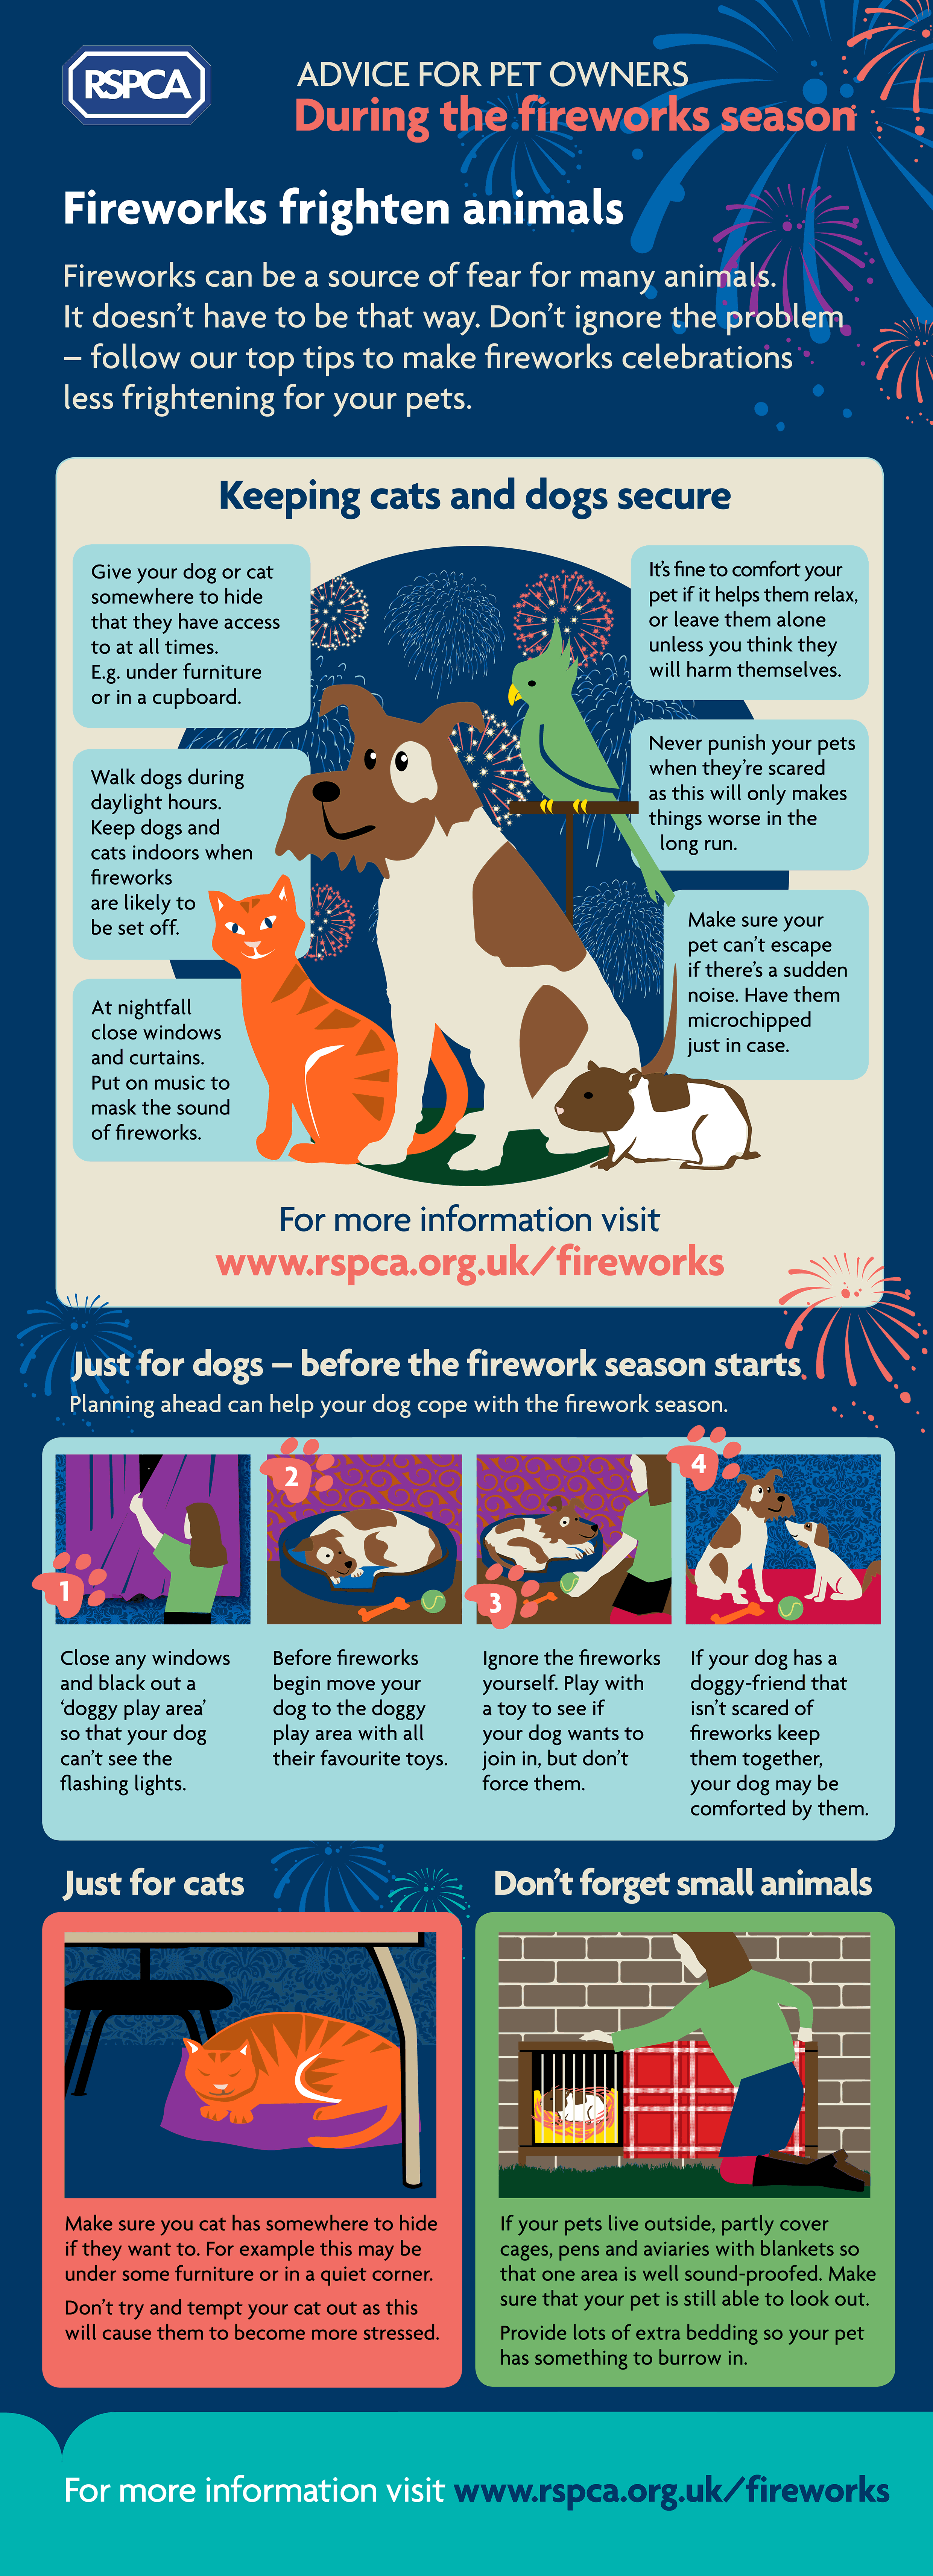 Advice for pet owners during the fireworks season Infographic - RSPCA